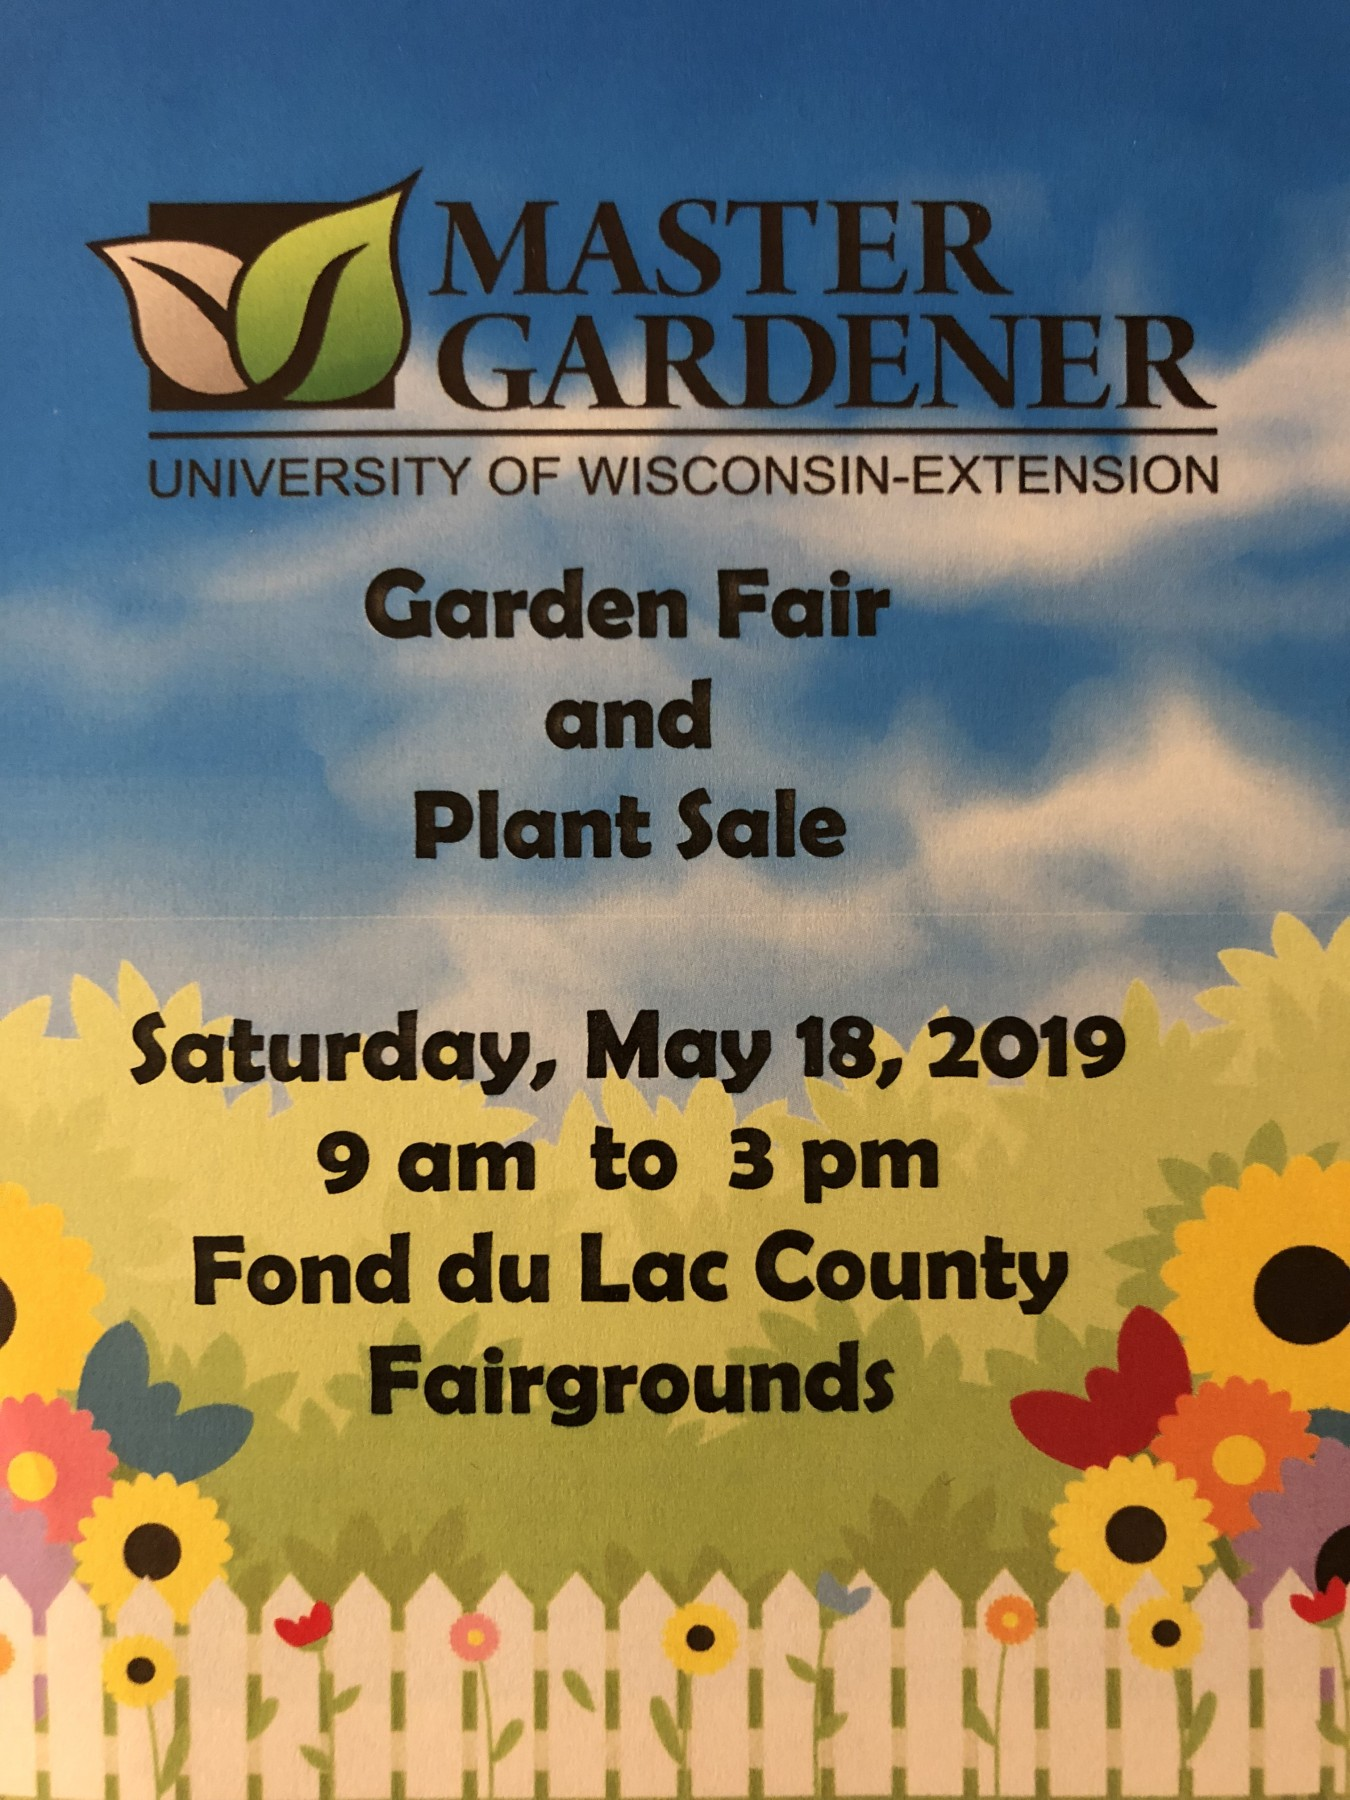 Garden Fair and Plant Sale in Fon du Lac County